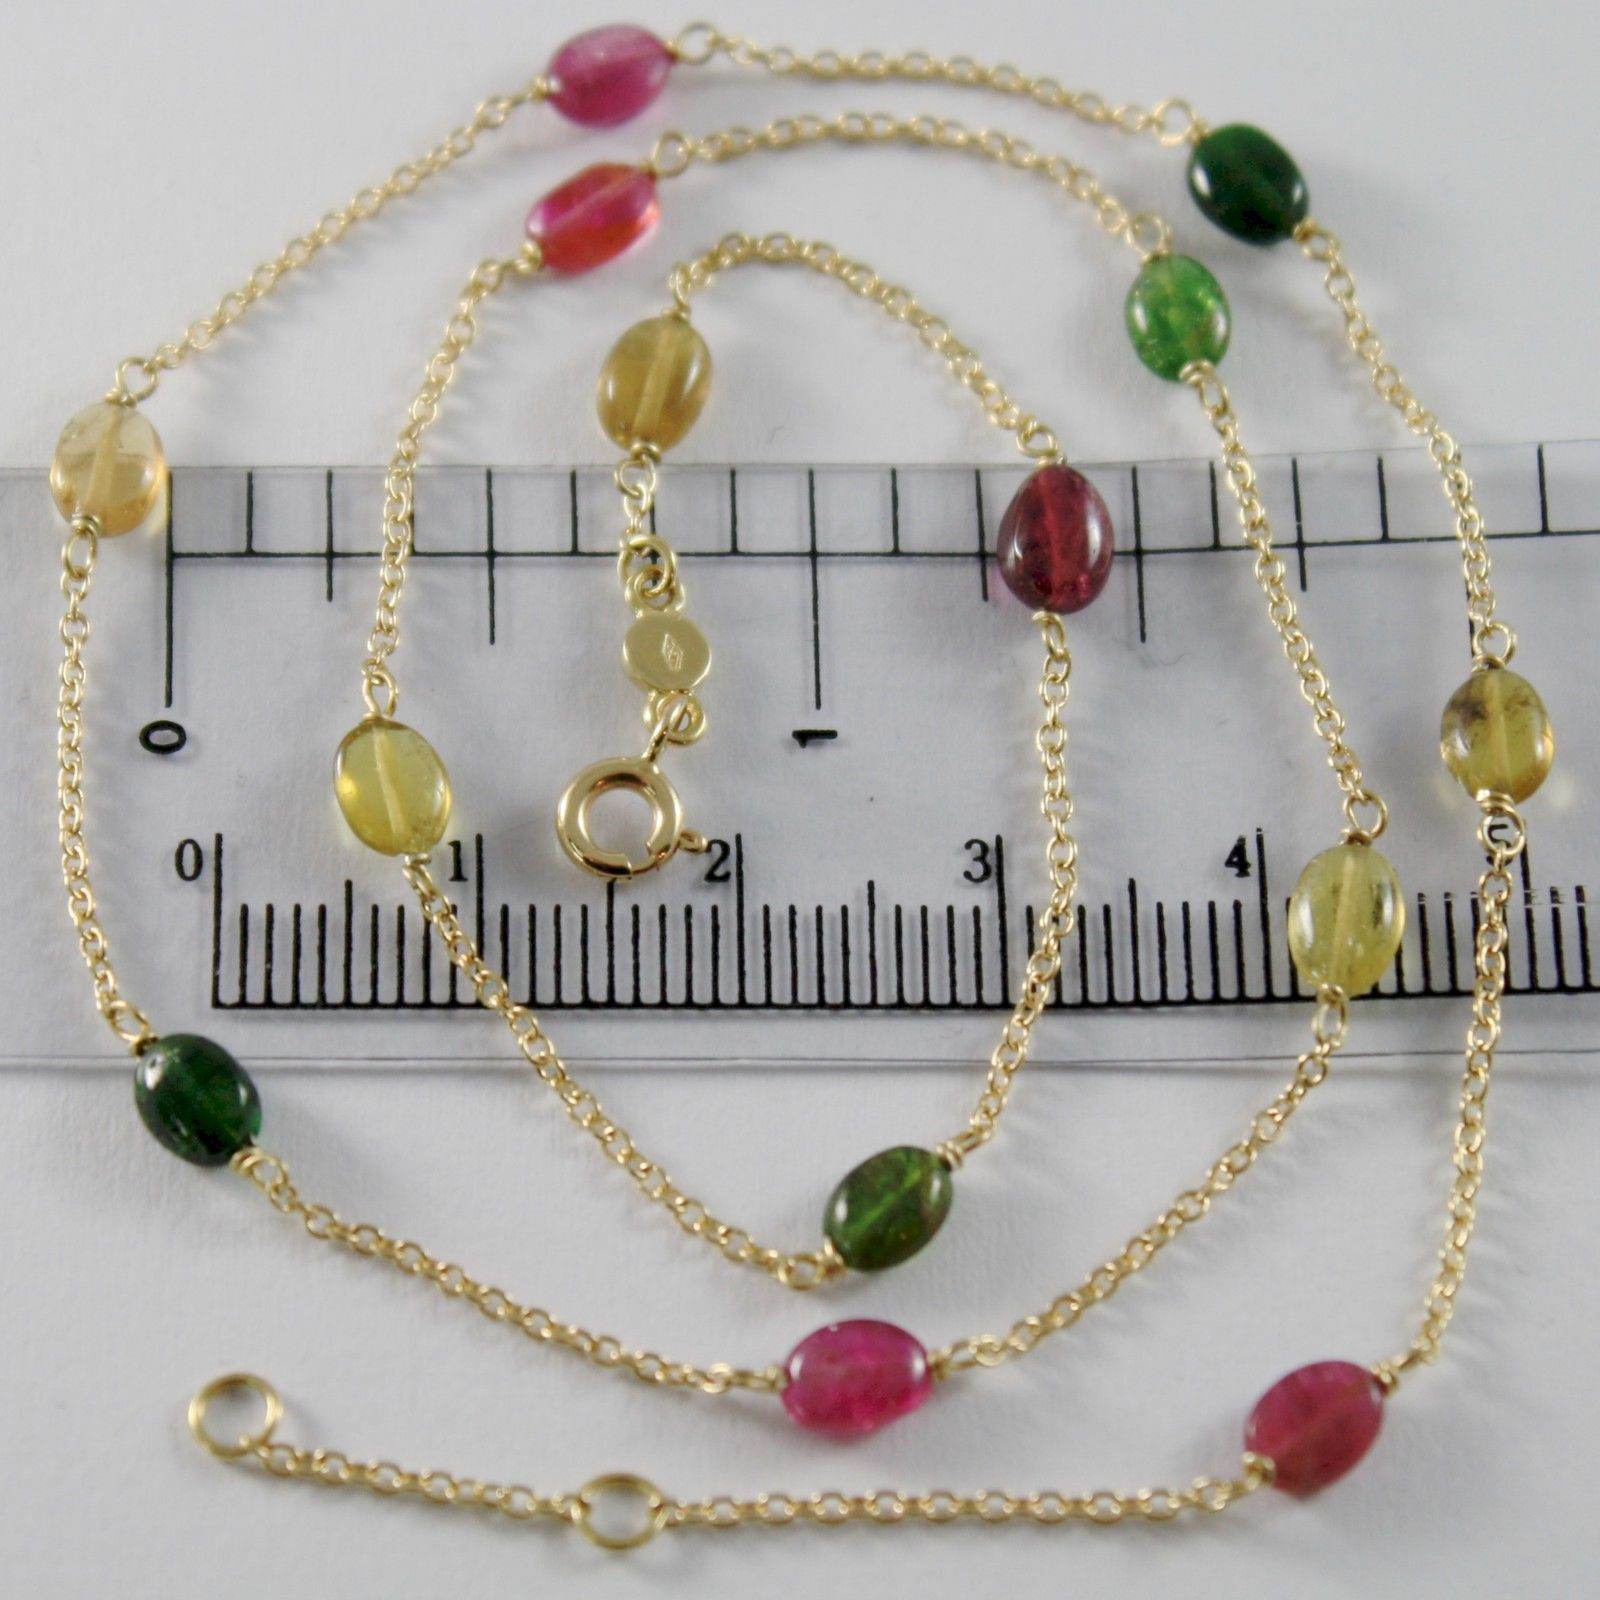 18K YELLOW GOLD MINI ROLO CHAIN NECKLACE WITH OVAL TOURMALINE, MADE IN ITALY